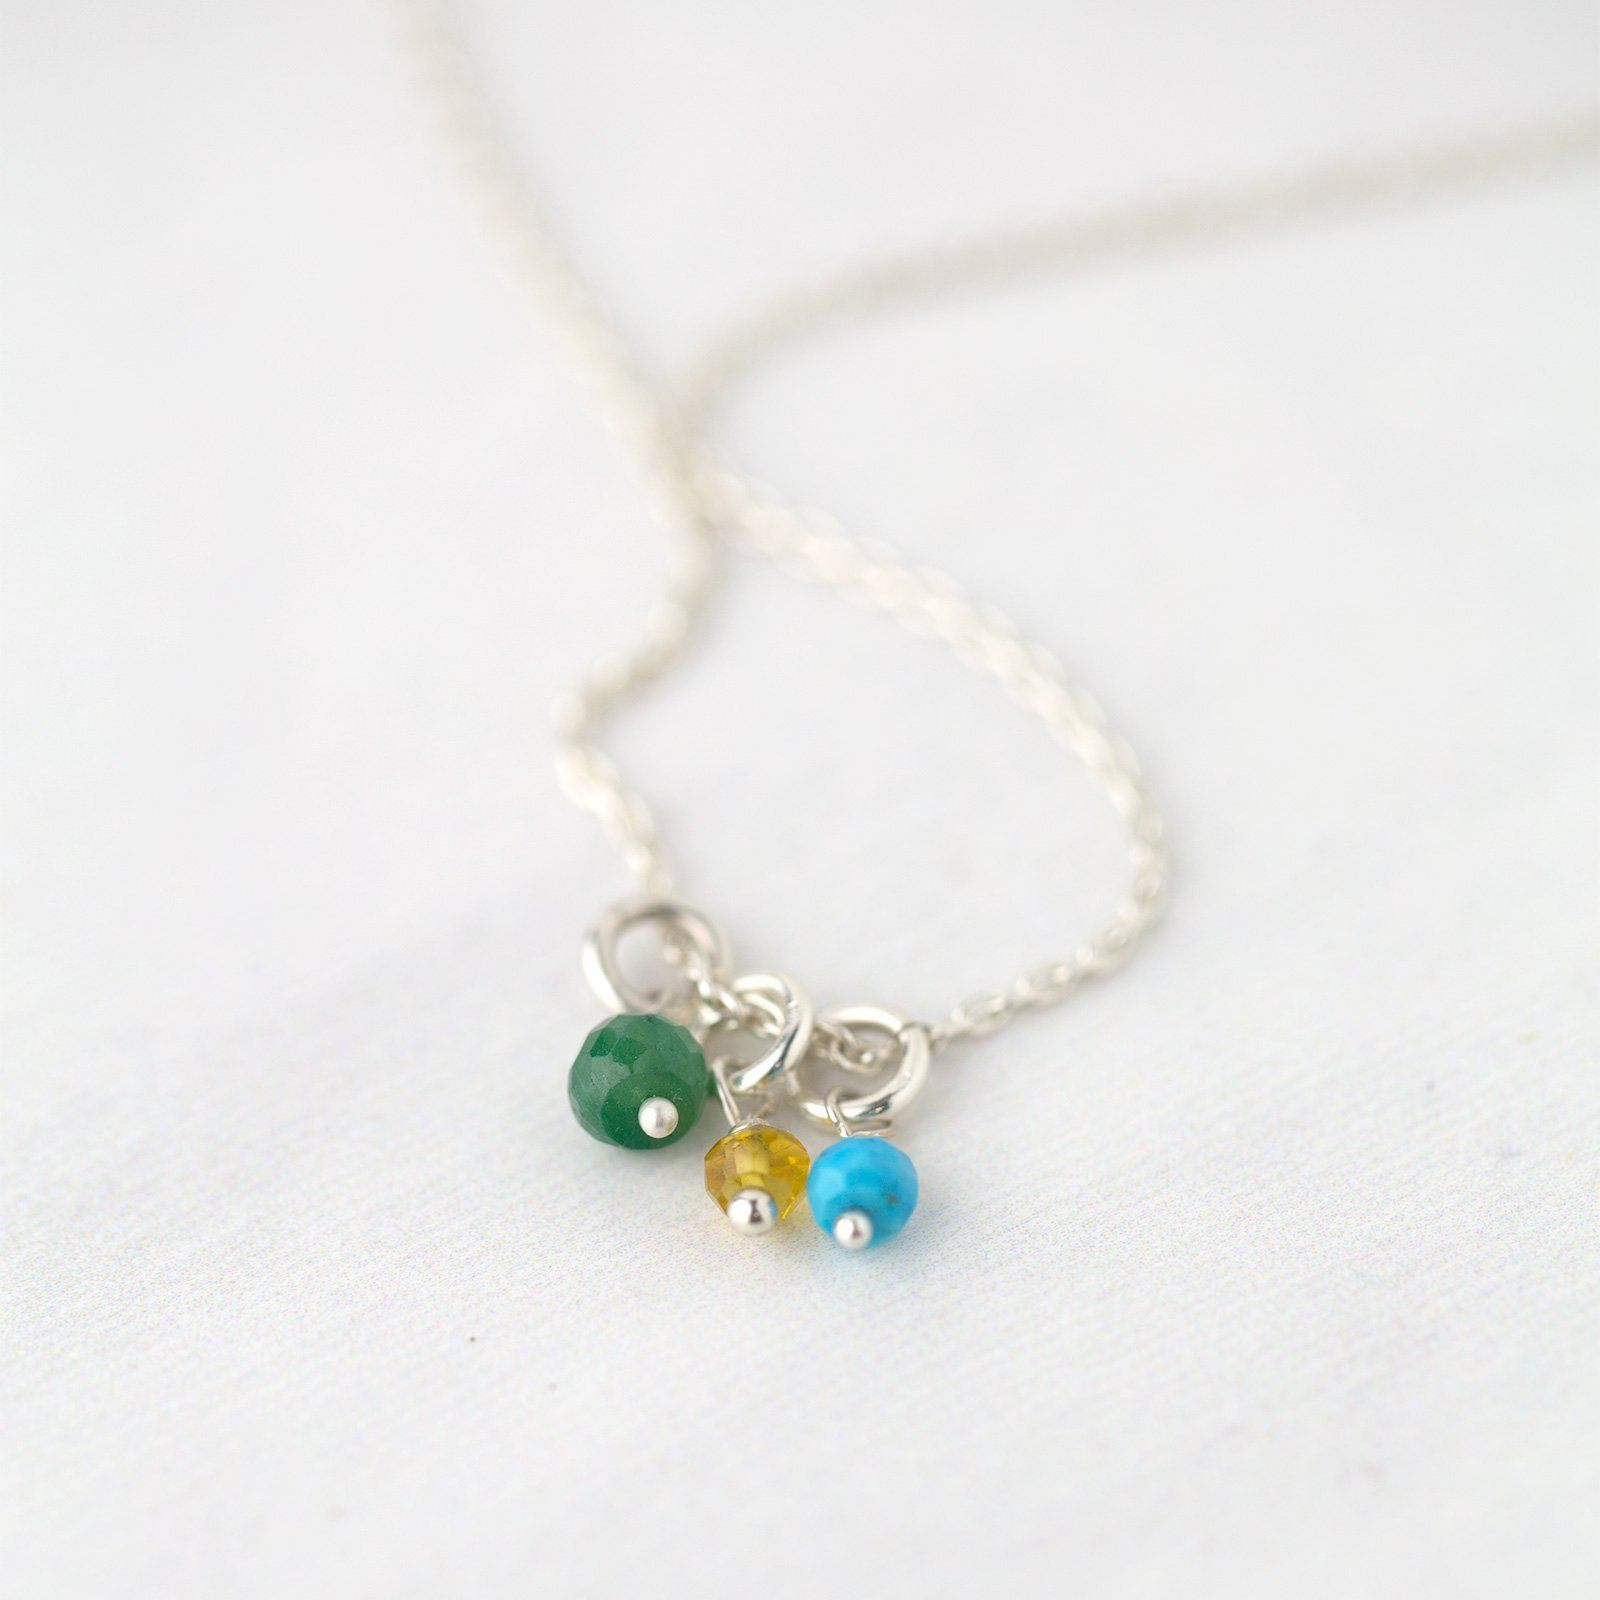 Dainty Birthstone Necklace - 1 or More Stones - Handmade Jewelry by Burnish